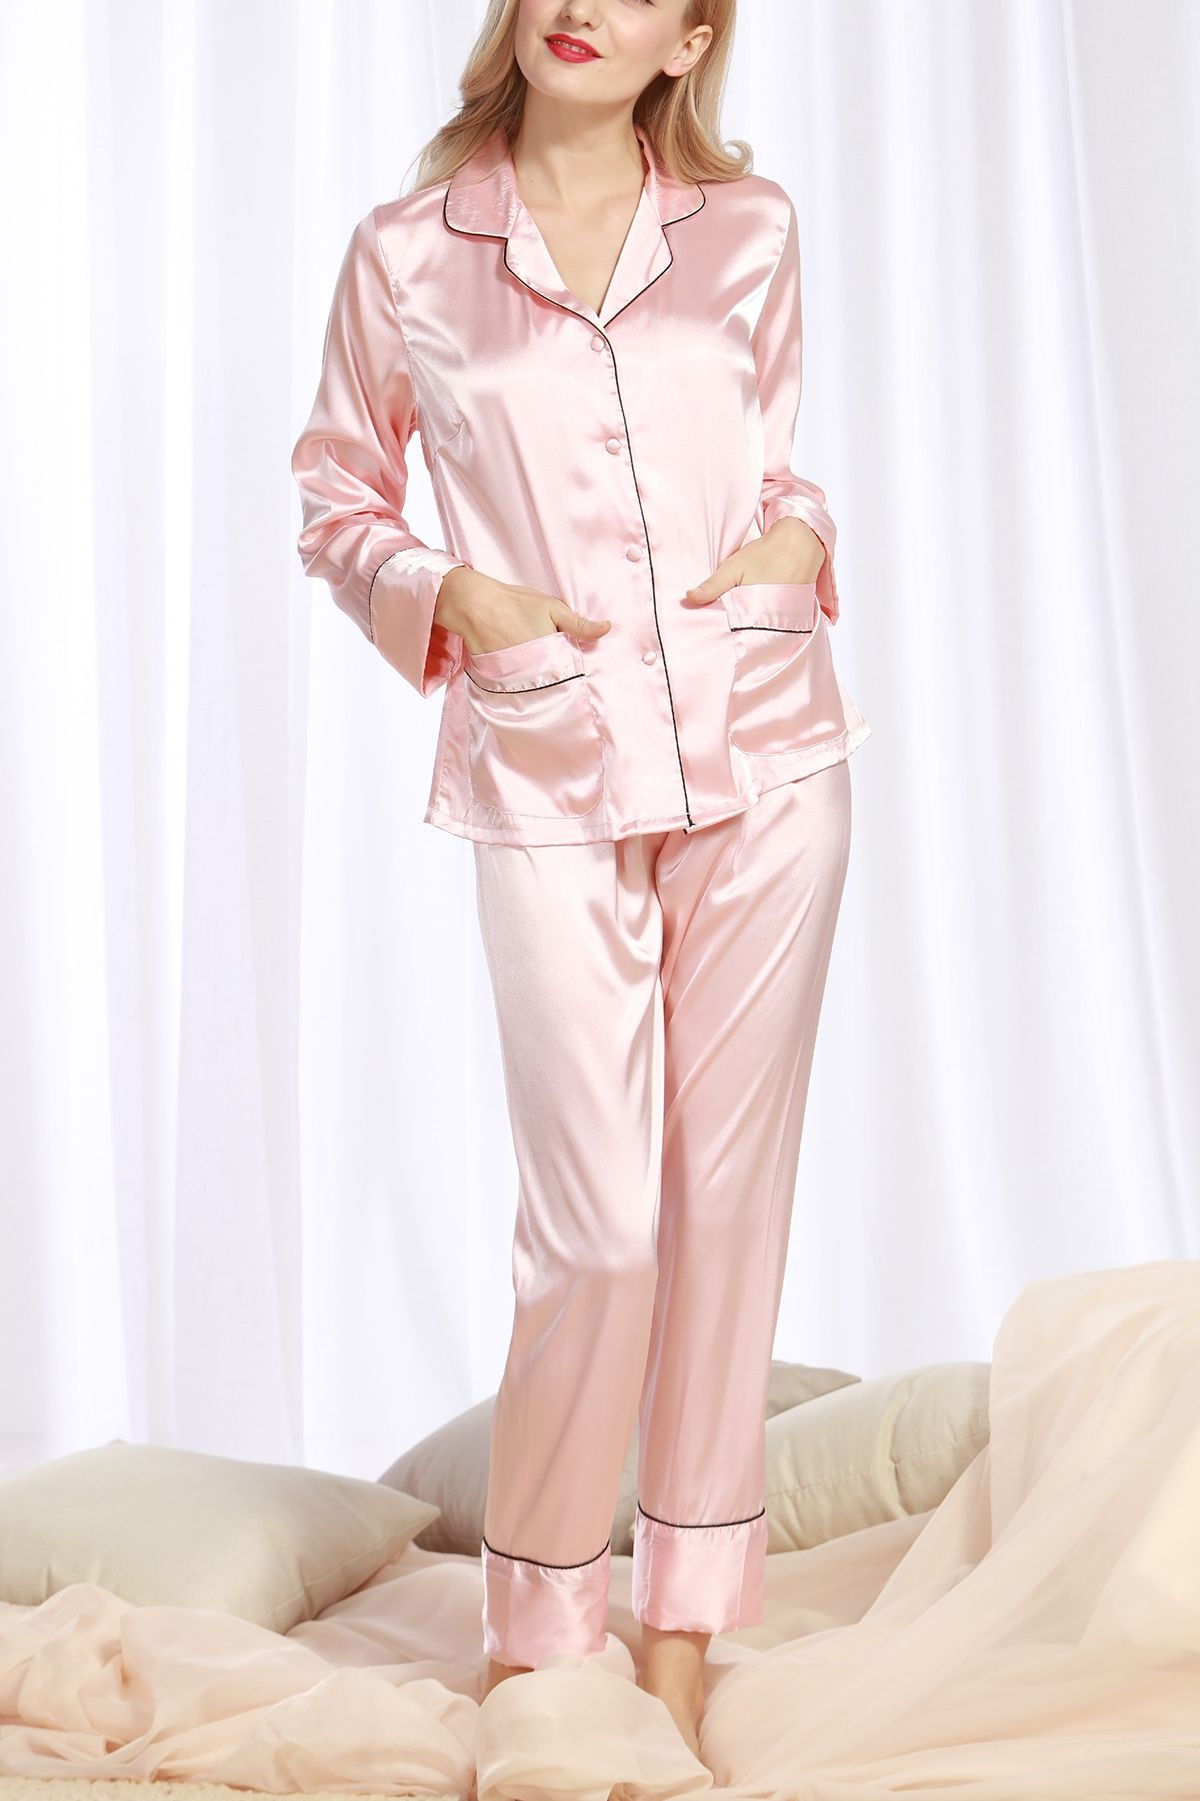 Womens  HomeService  PajamasWithButton  Silk  Nightwear  TwoPiecesSet c78688659